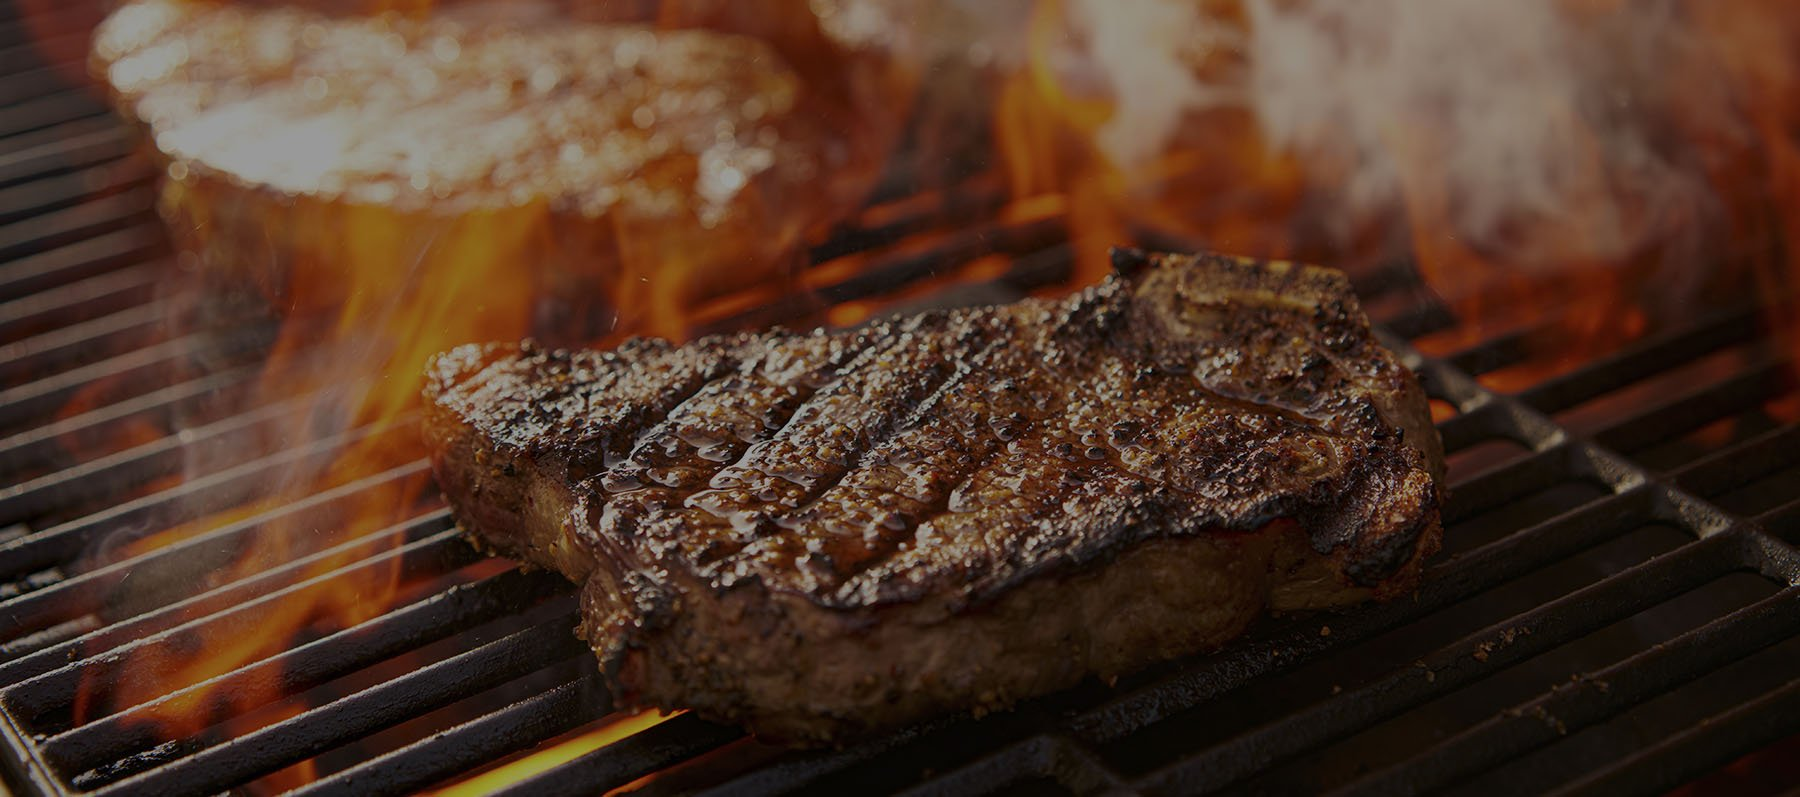 rib-eye steaks cooking on flaming grill